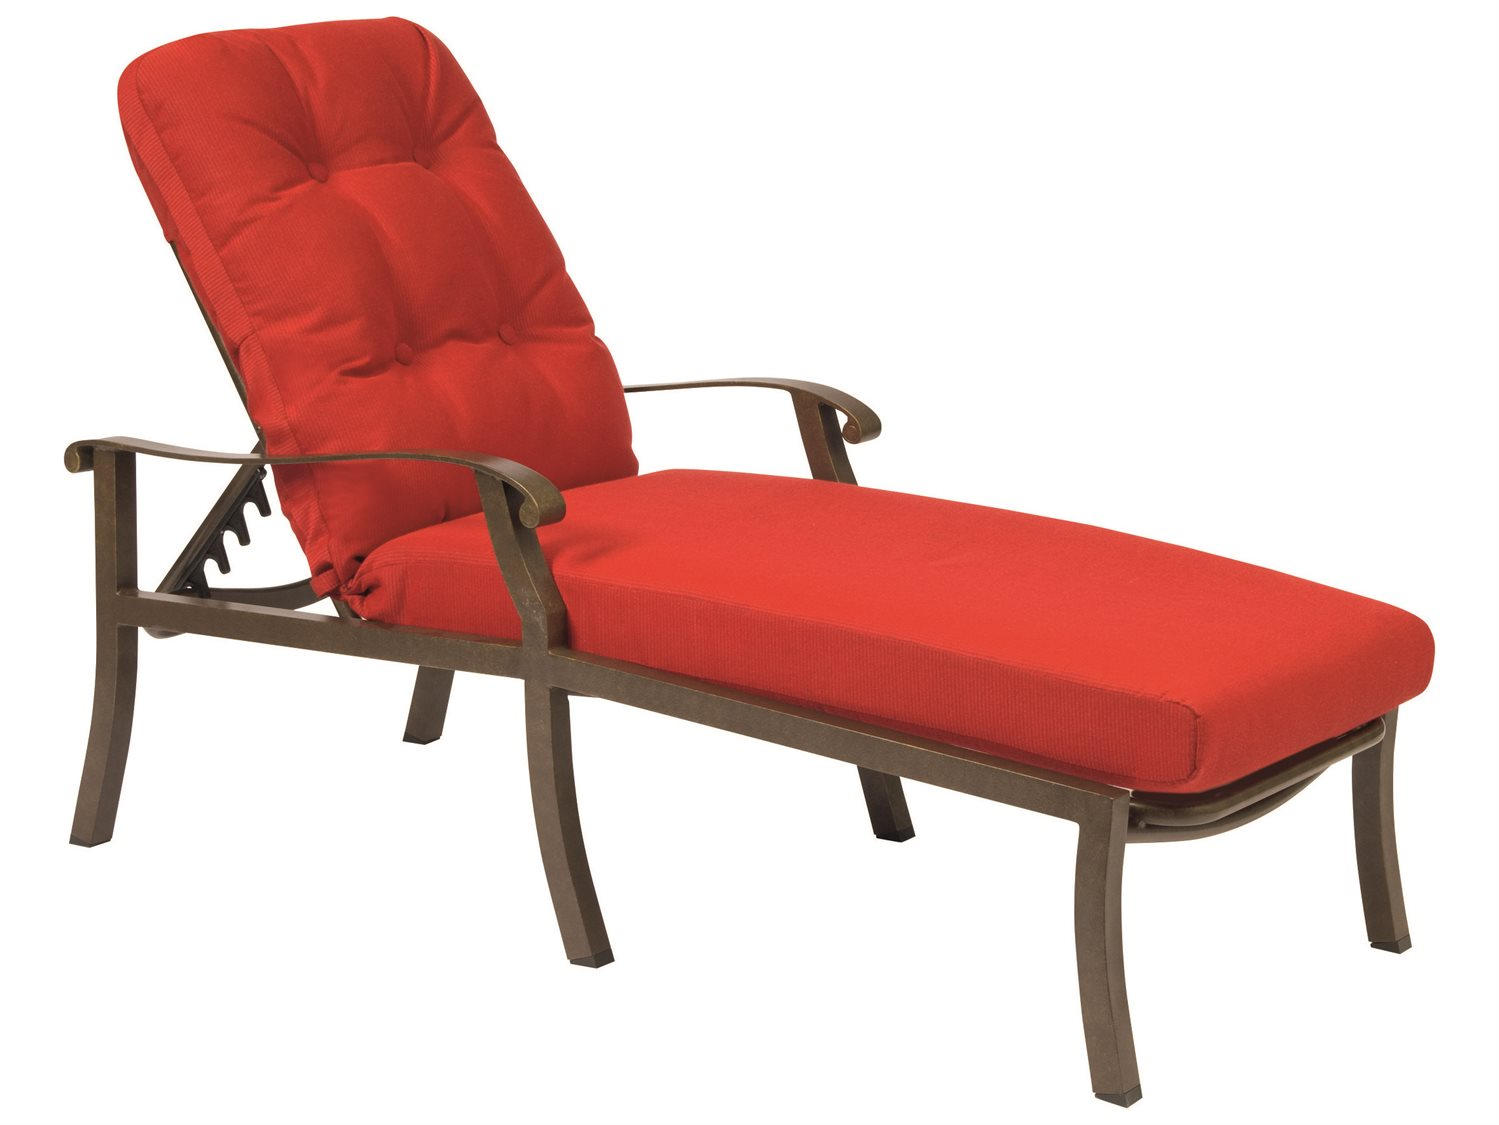 Woodard Cortland Adjustable Chaise Lounge Replacement